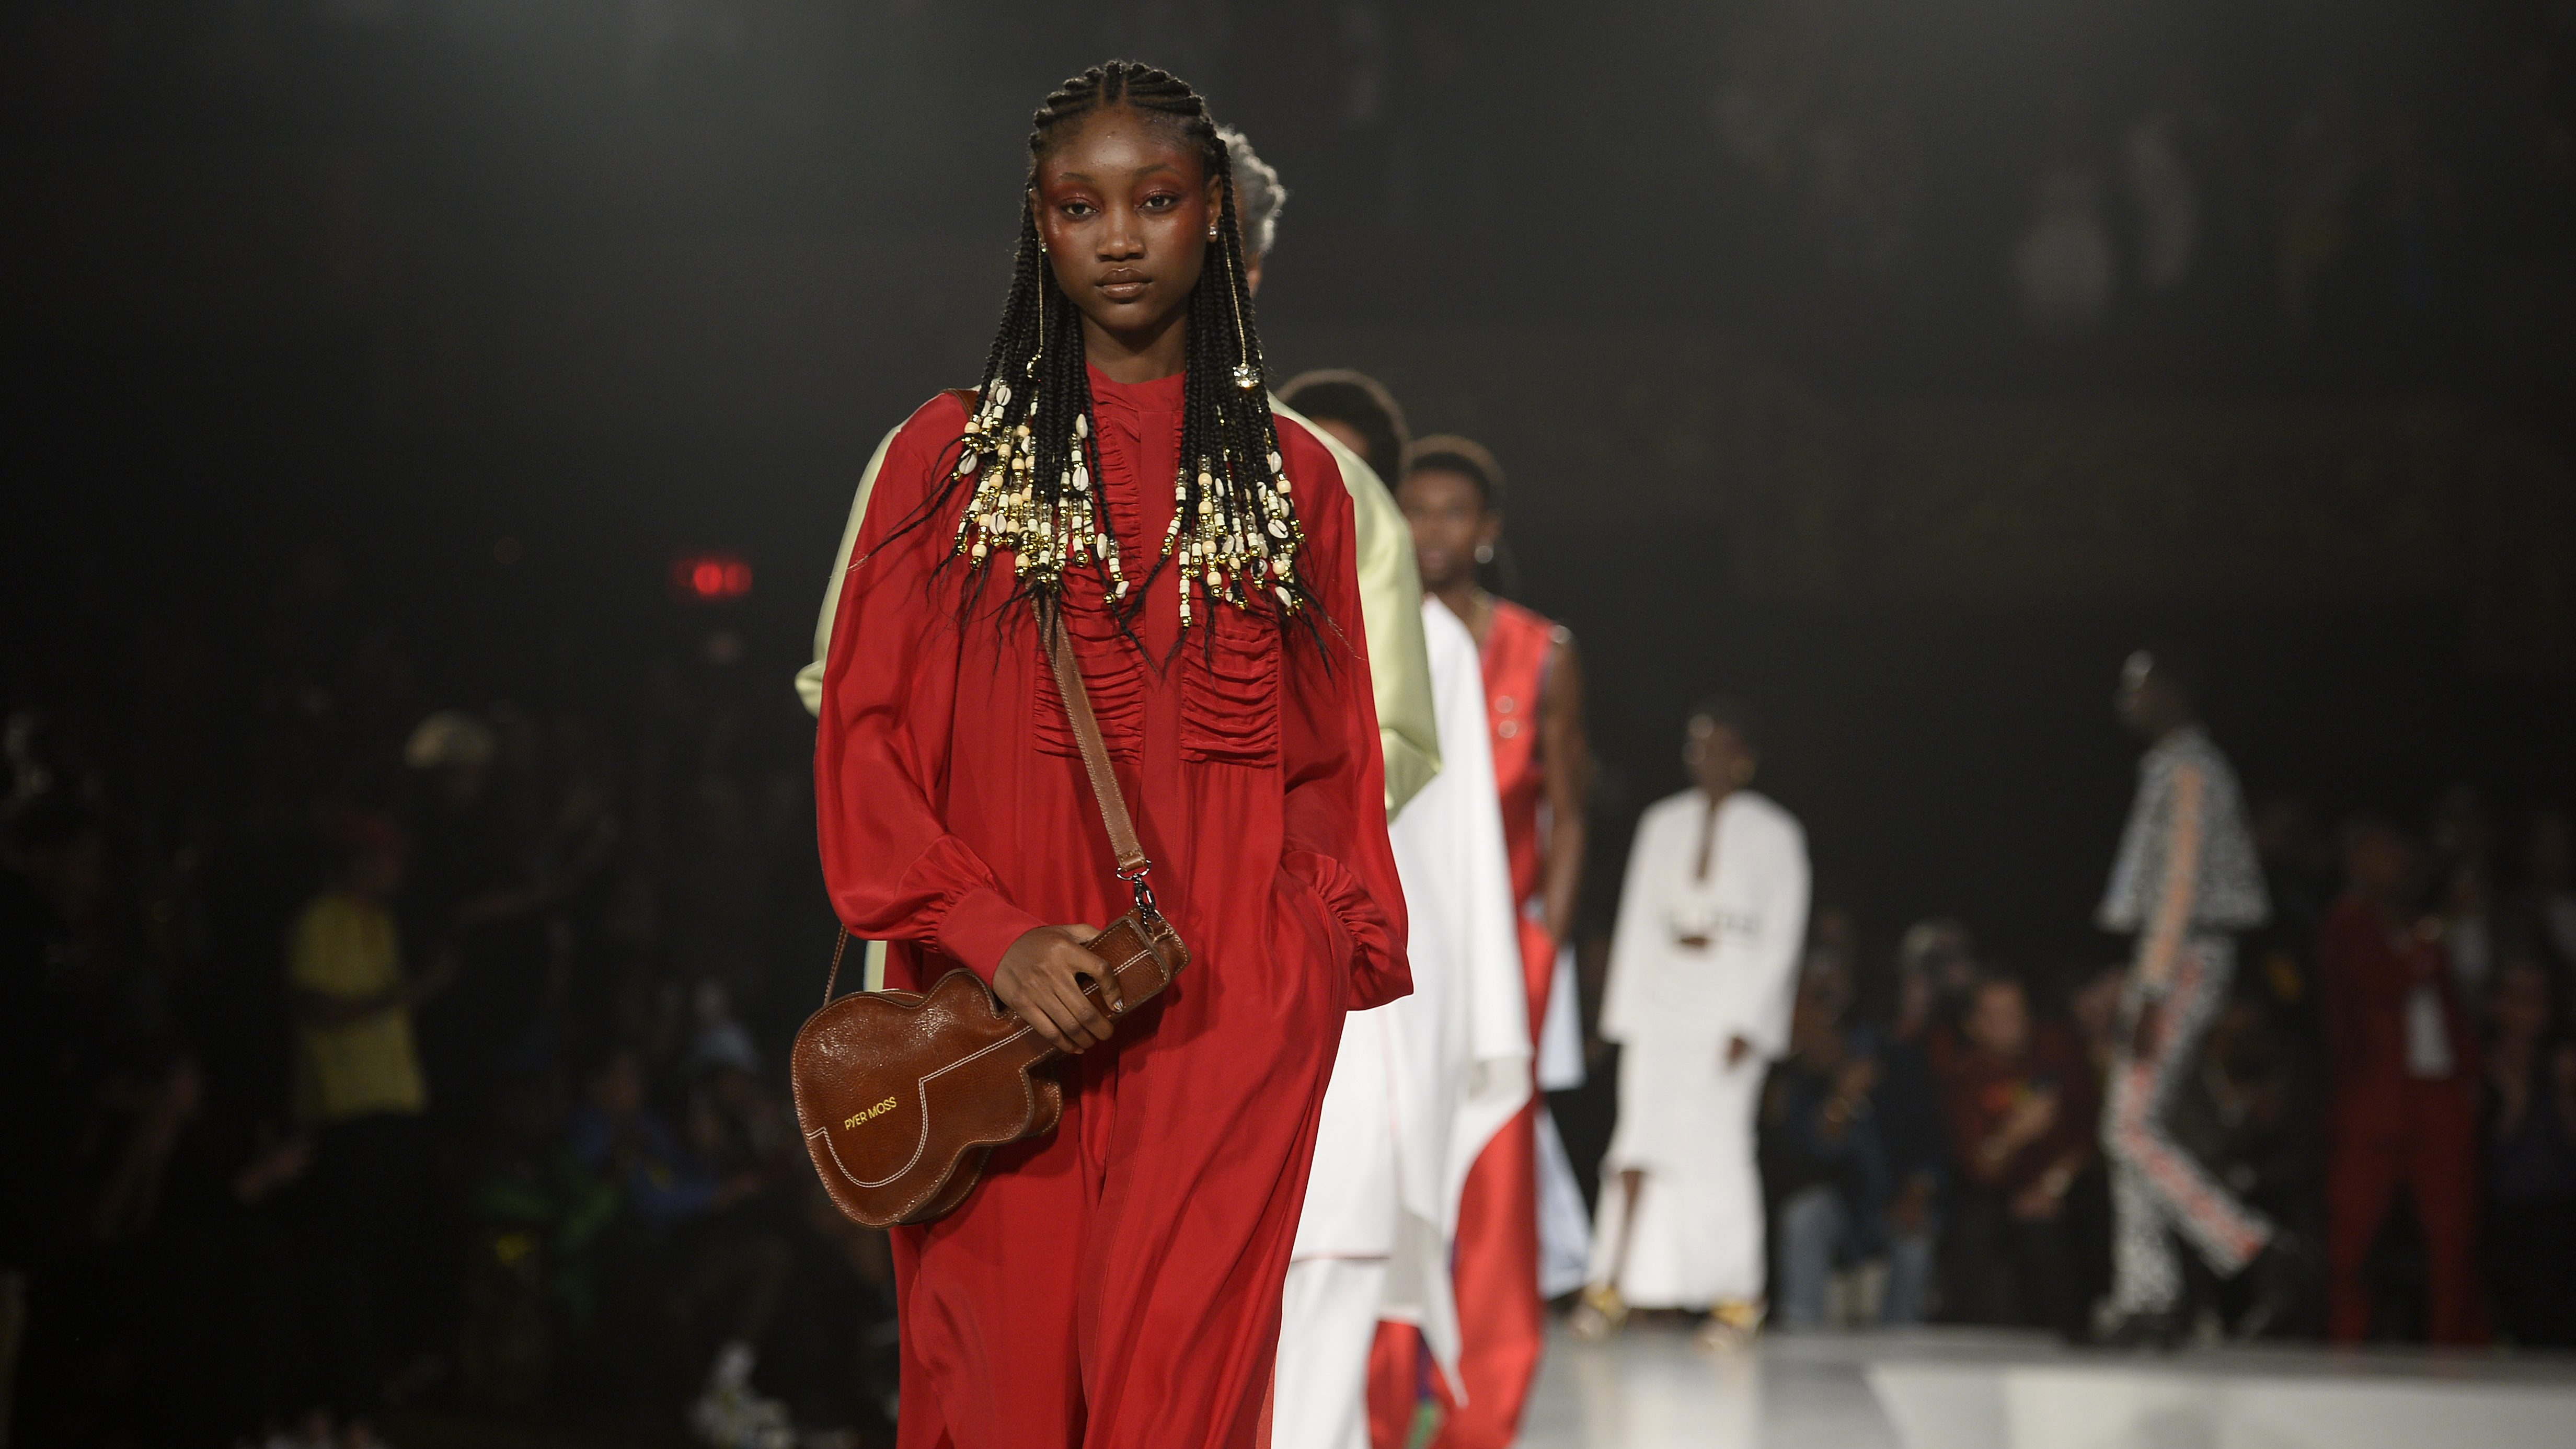 A model on the runway—with a bag in the shape of a guitar—at Pyer Moss